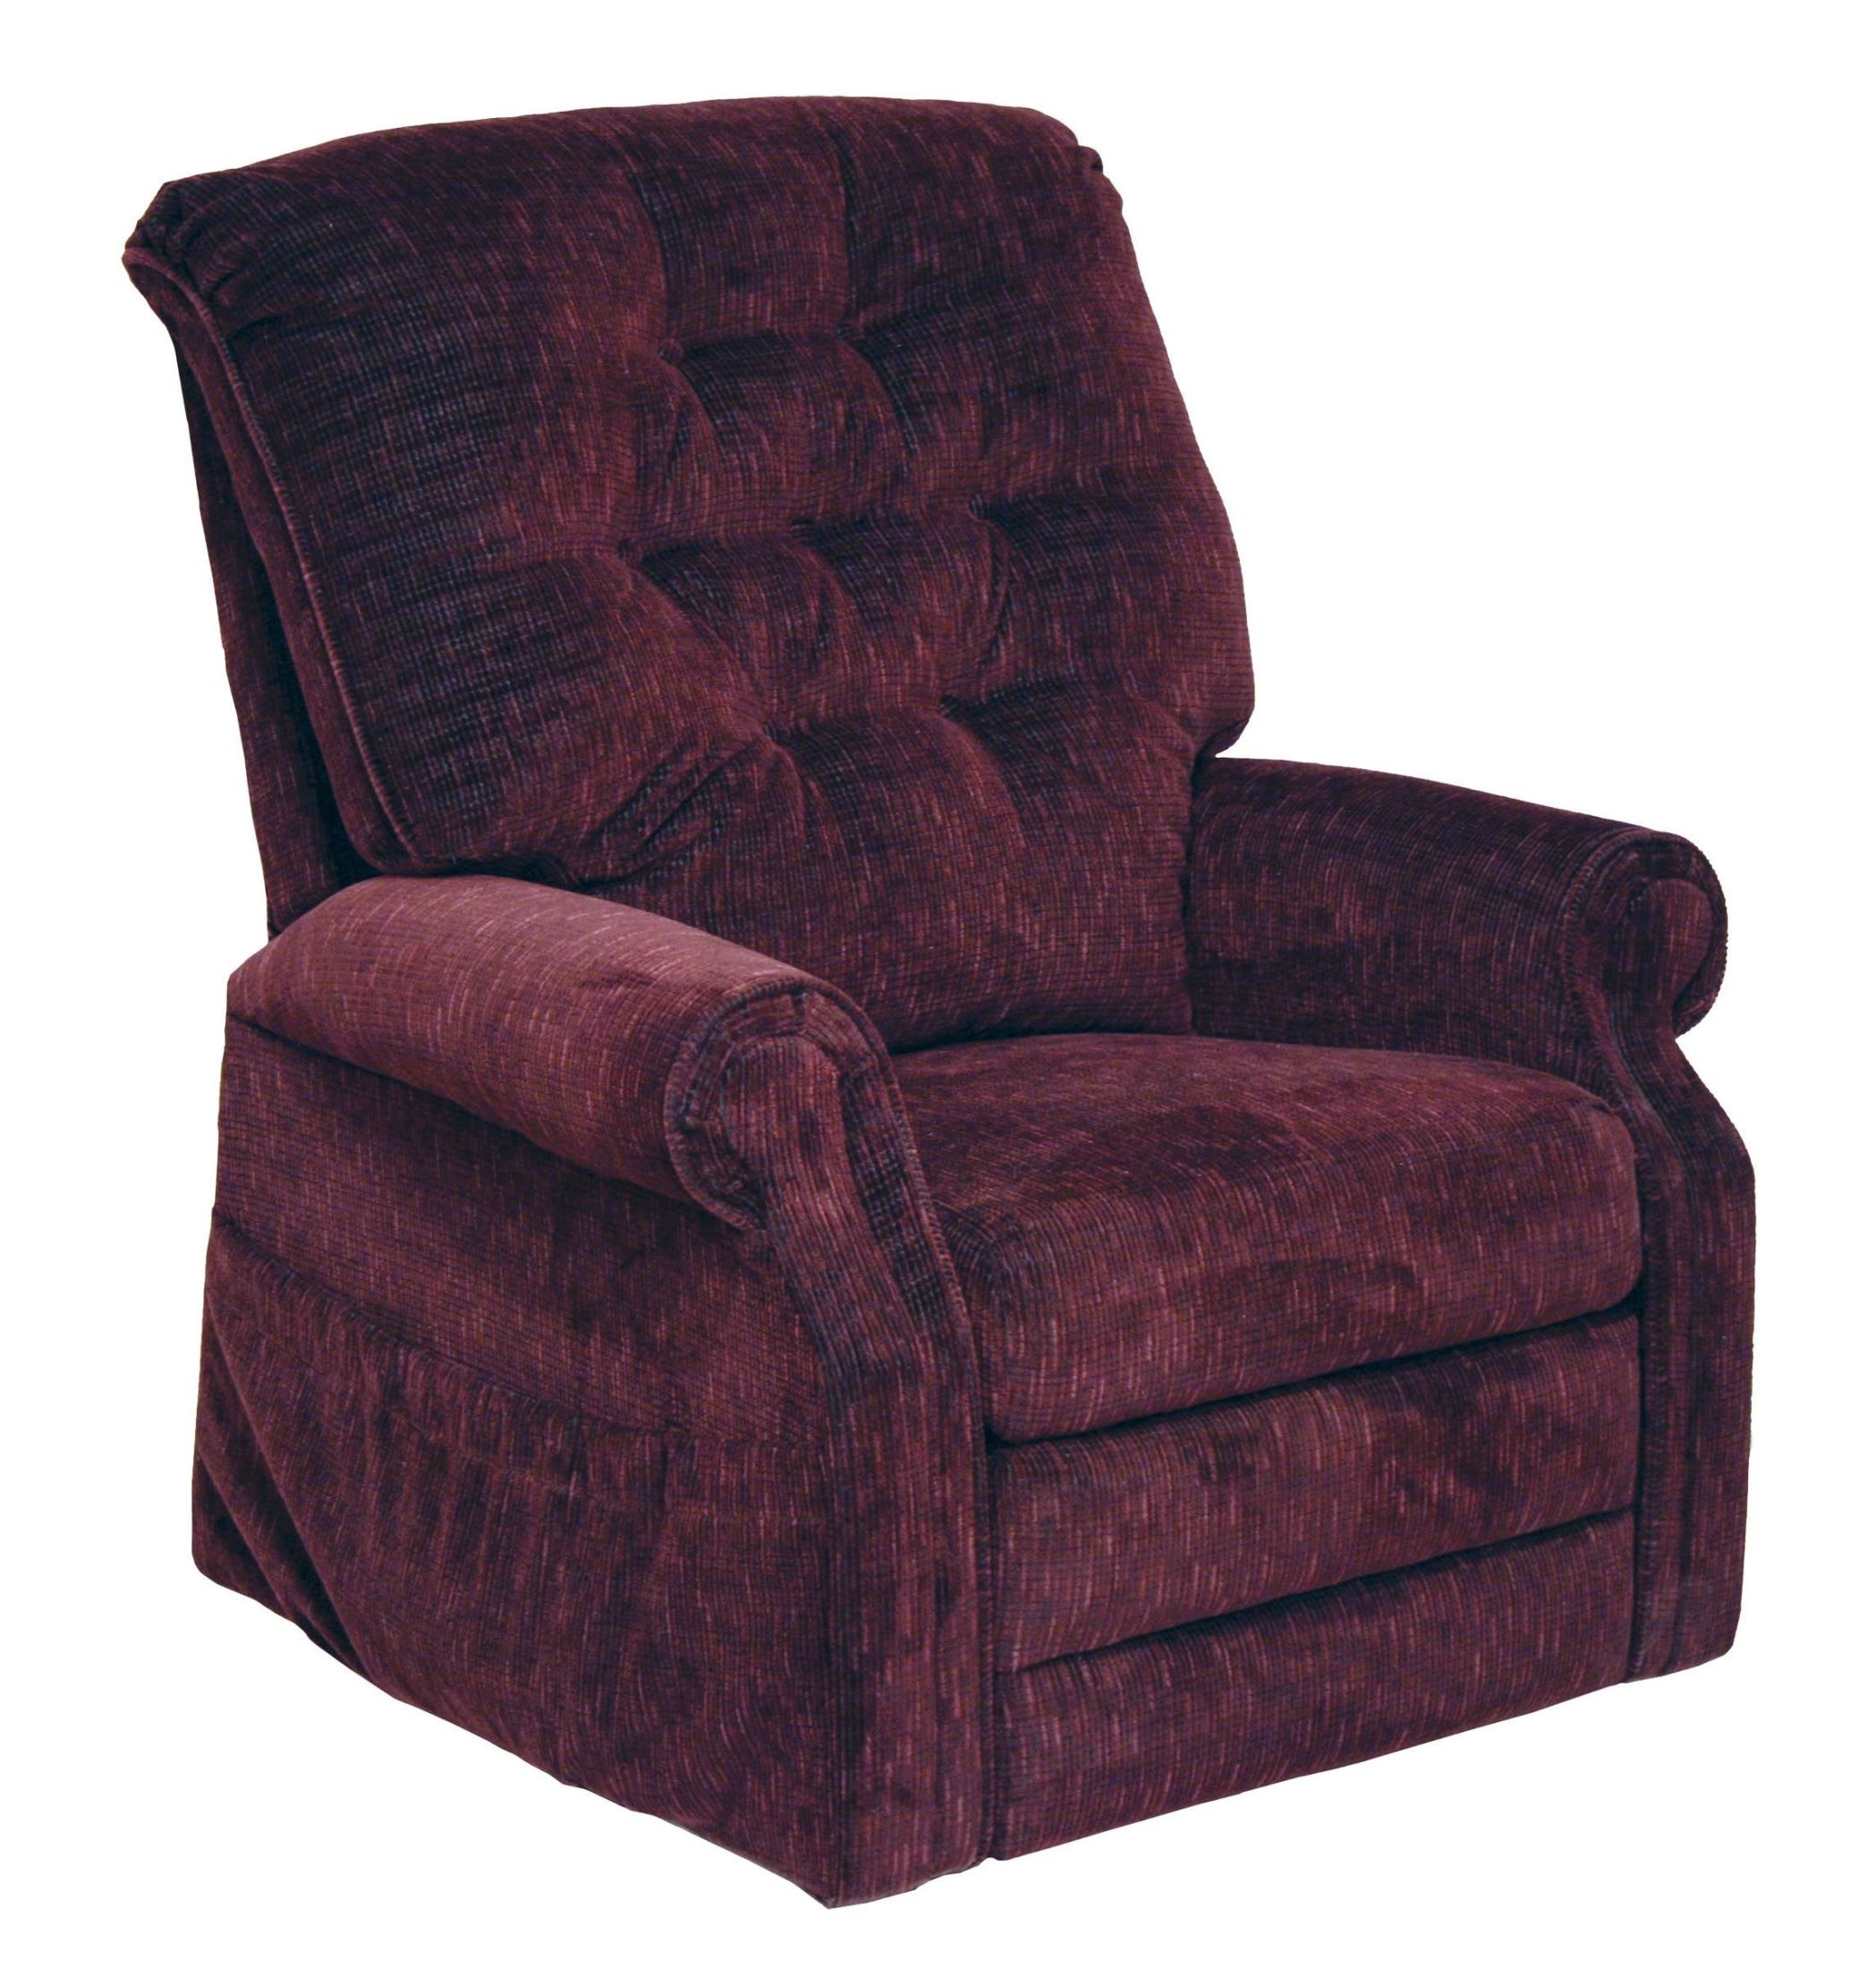 Patriot vino power lift recliner from catnapper for Catnapper cloud nine chaise recliner